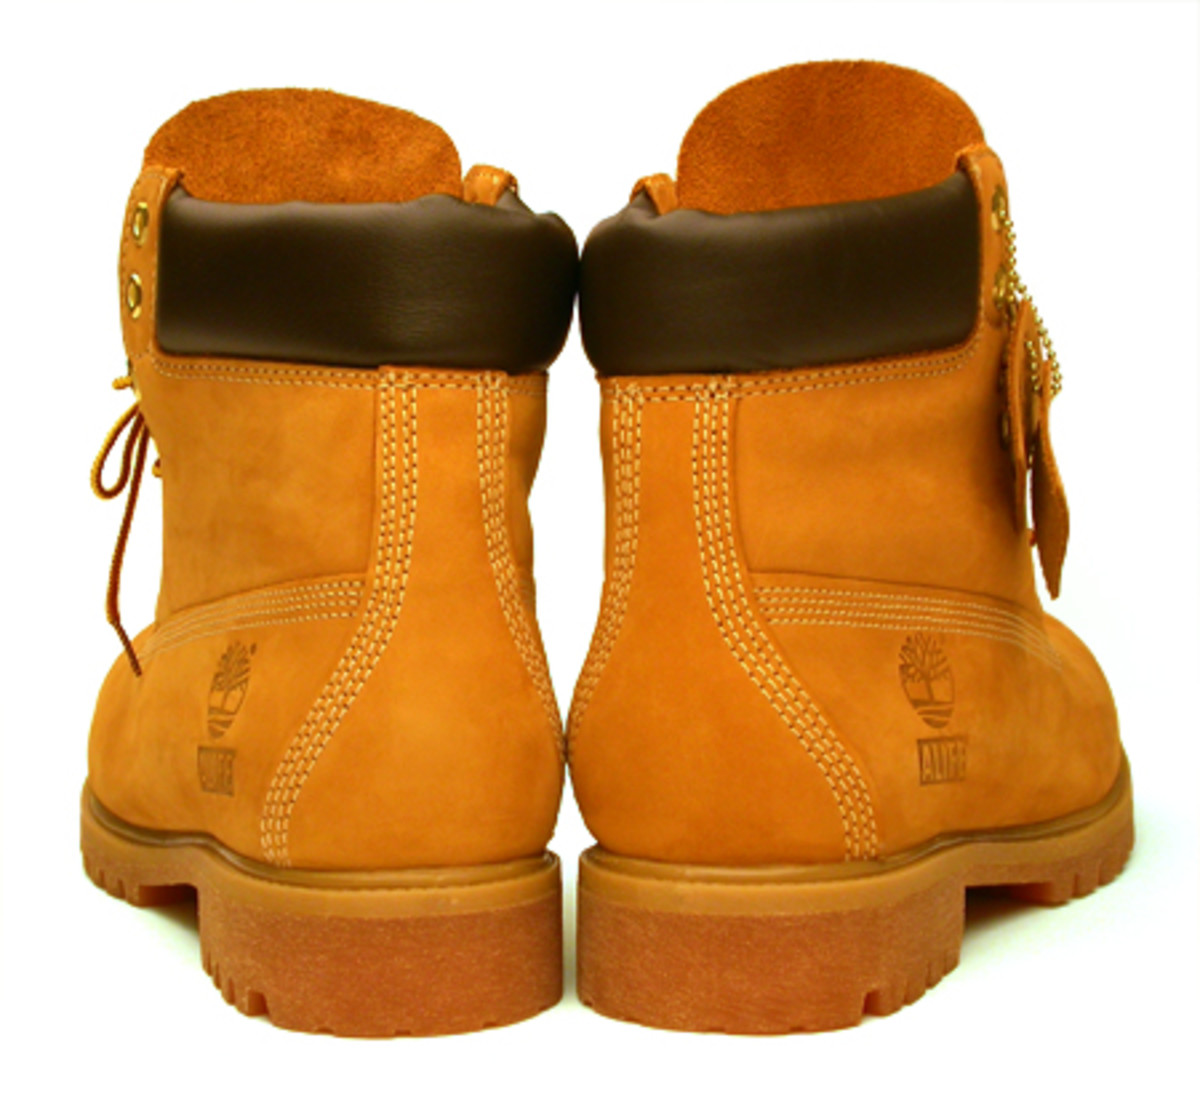 "ALIFE x Timberland 6"" Wheat Boot - Available 9/22 - 4"